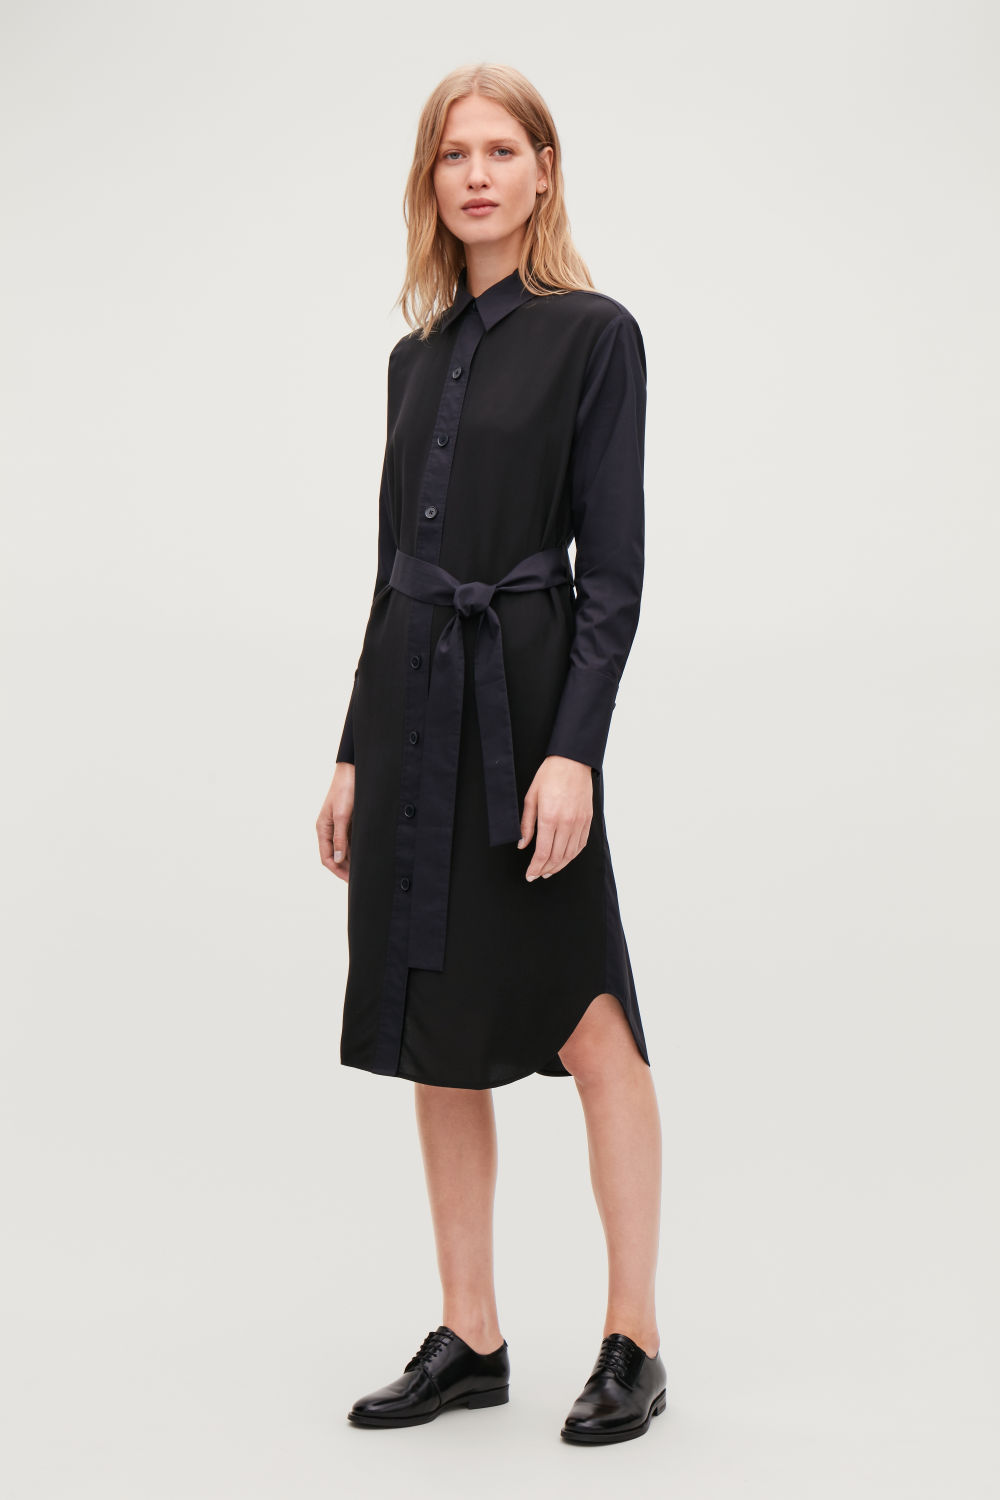 코스 COS SILK-COTTON MIX SHIRT DRESS,Black \/ Midnight blue